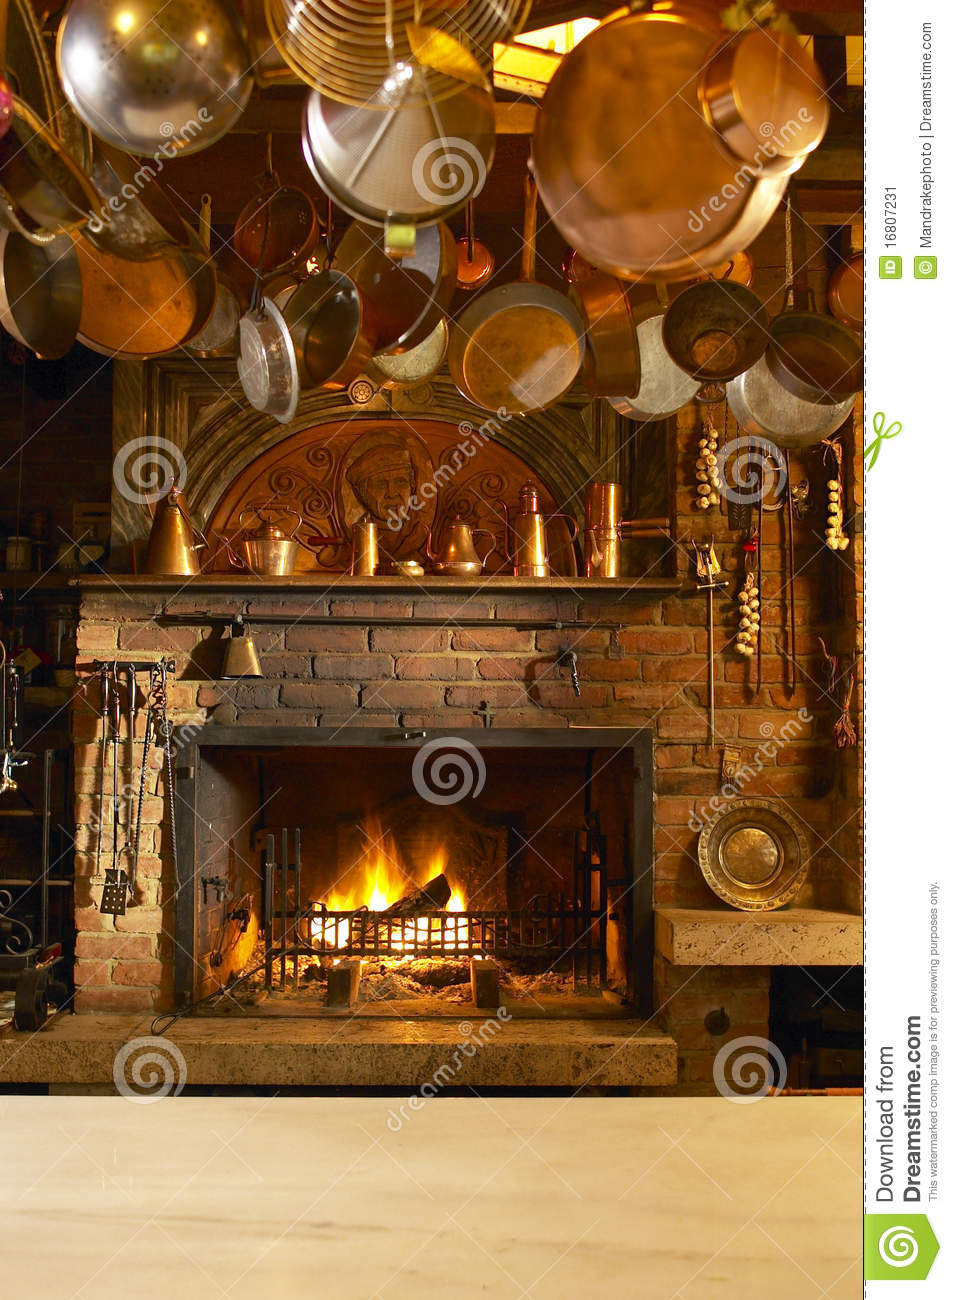 Antique Kitchen With Fireplace Stock Image - Image: 16807231